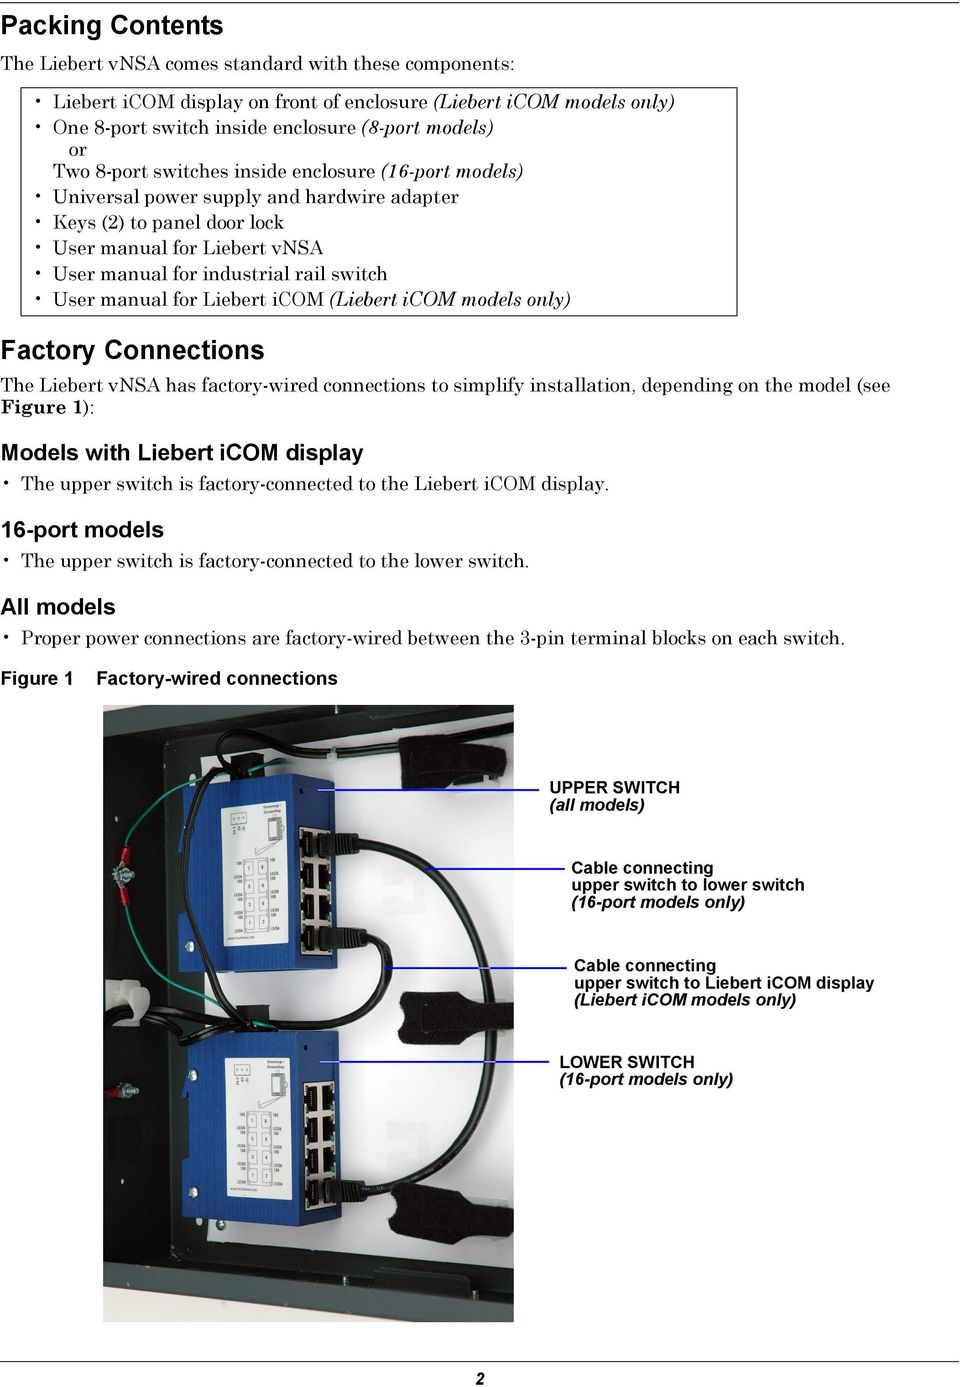 manual for Liebert icom (Liebert icom models only) Factory Connections The Liebert vnsa has factory-wired connections to simplify installation, depending on the model (see Figure 1): Models with